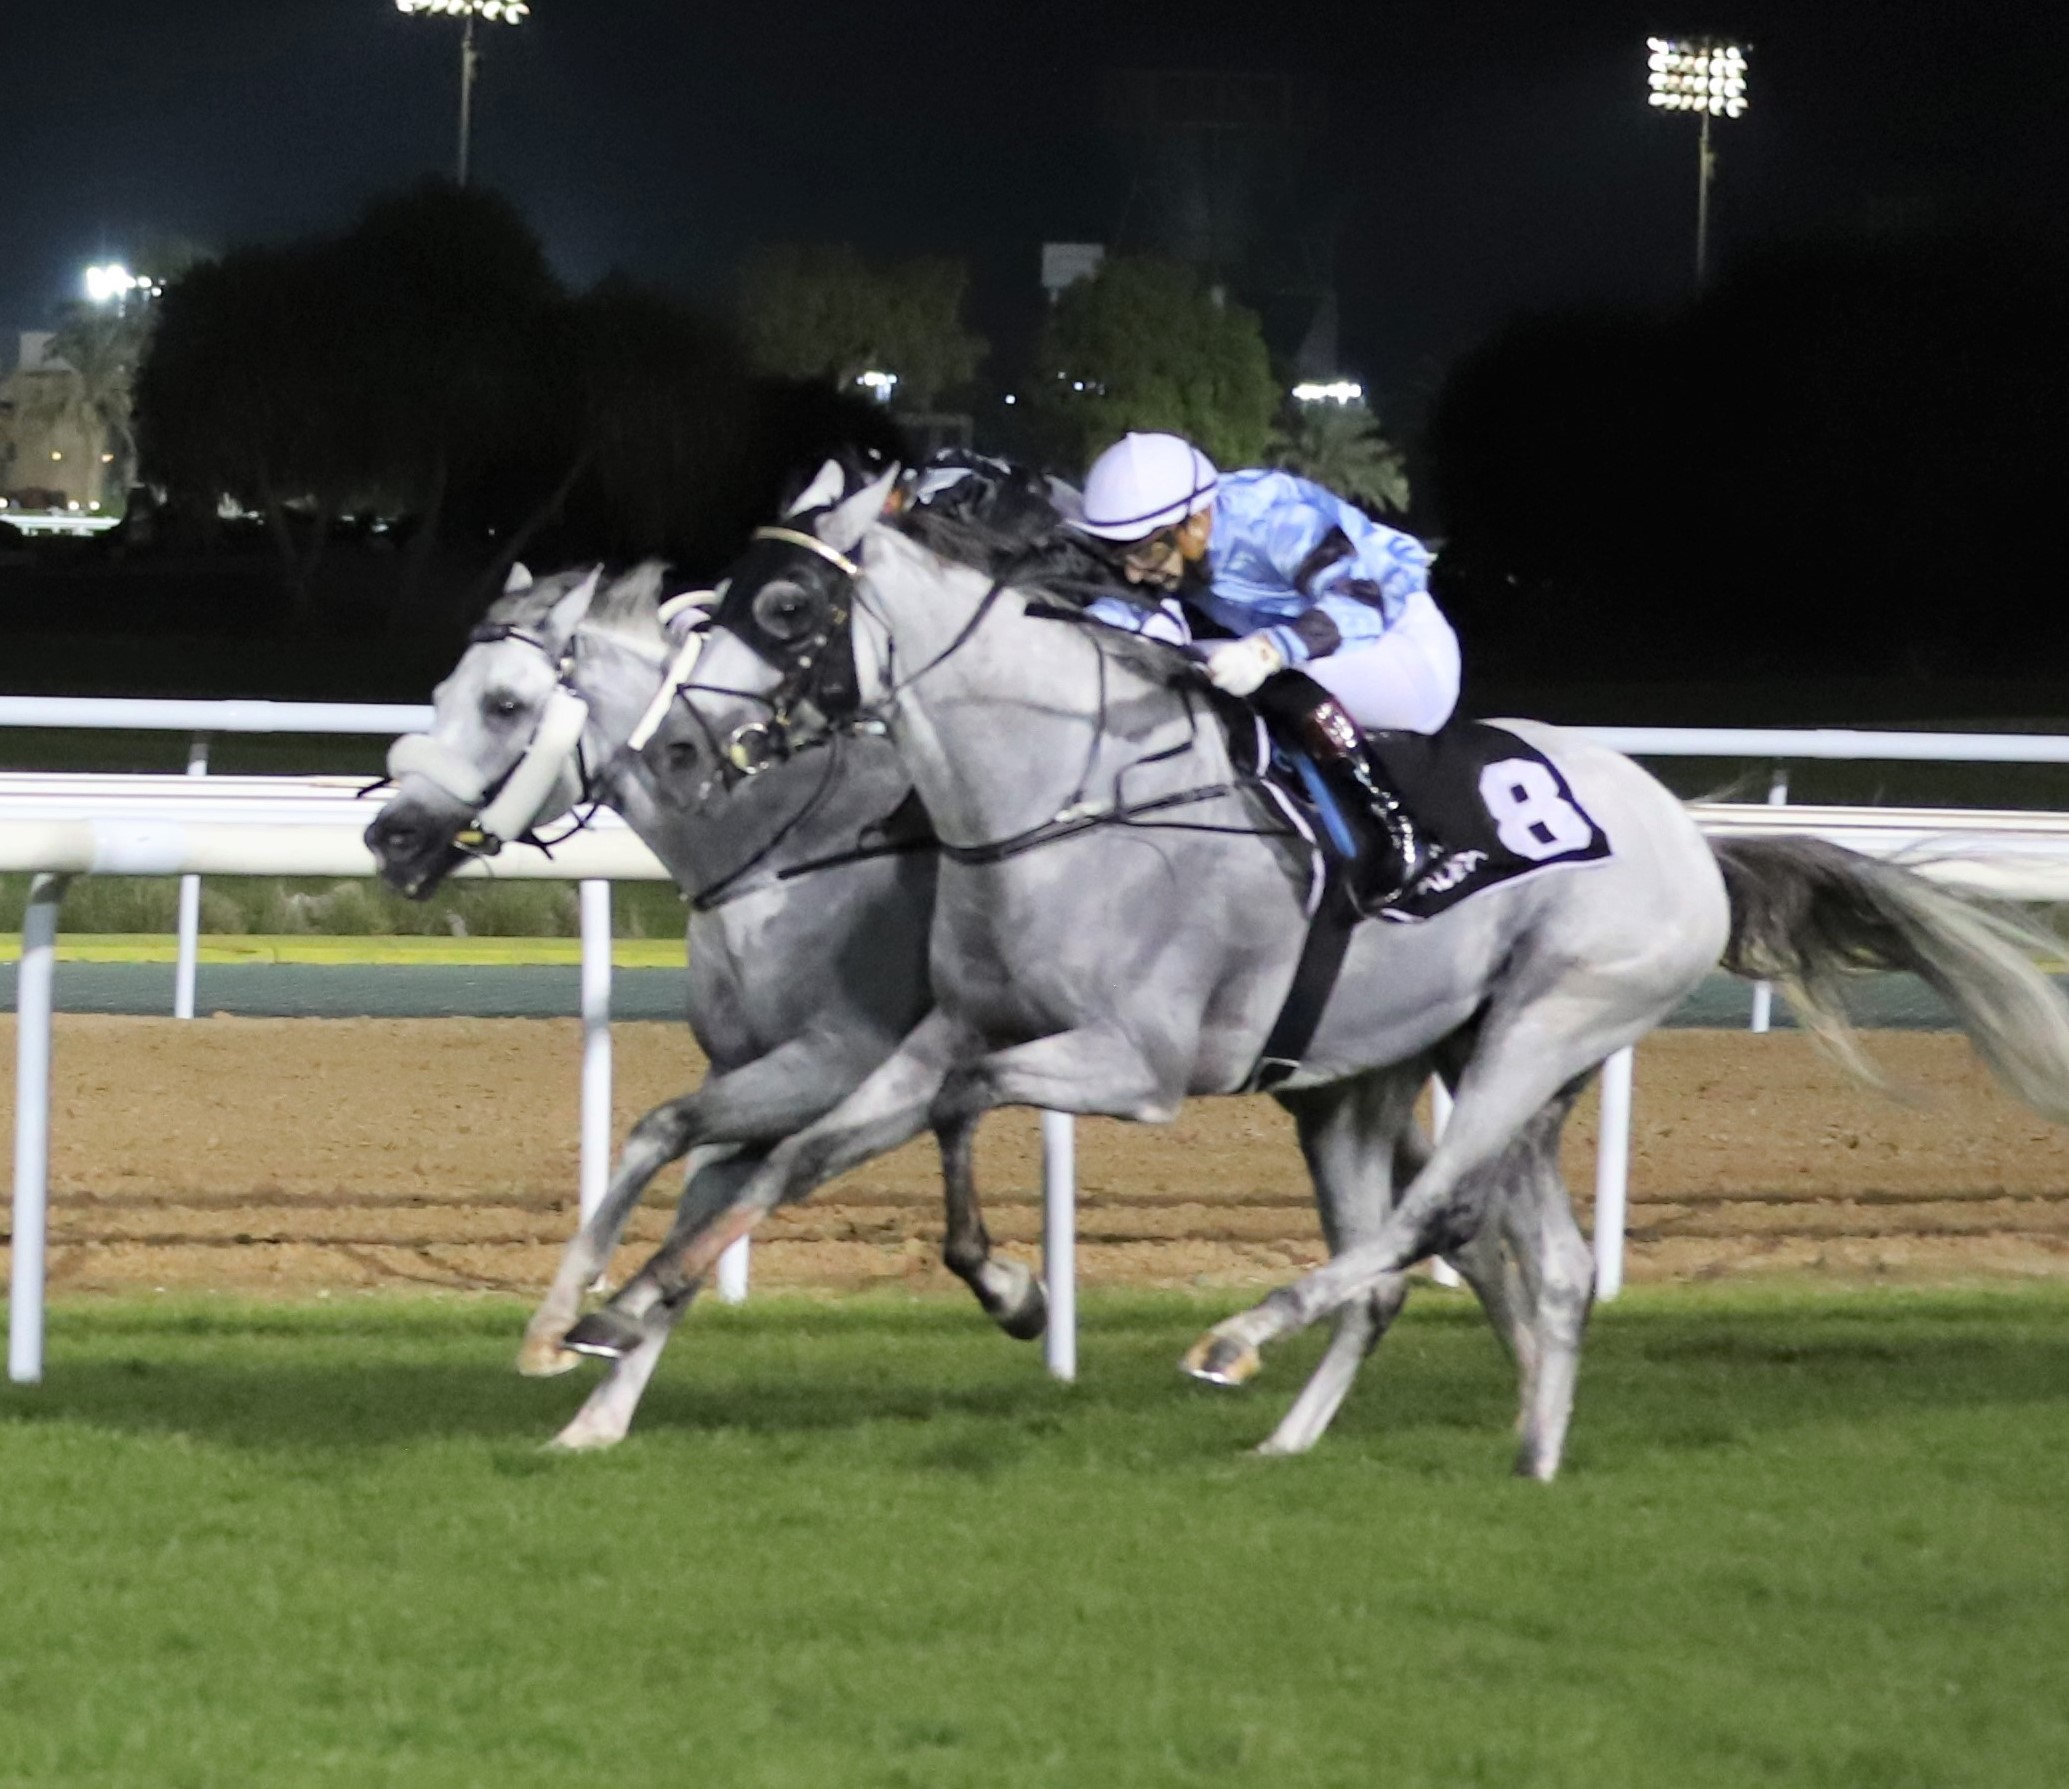 16 horses in round (8) of the Al Wathba Stallions Cup in Abu Dhabi